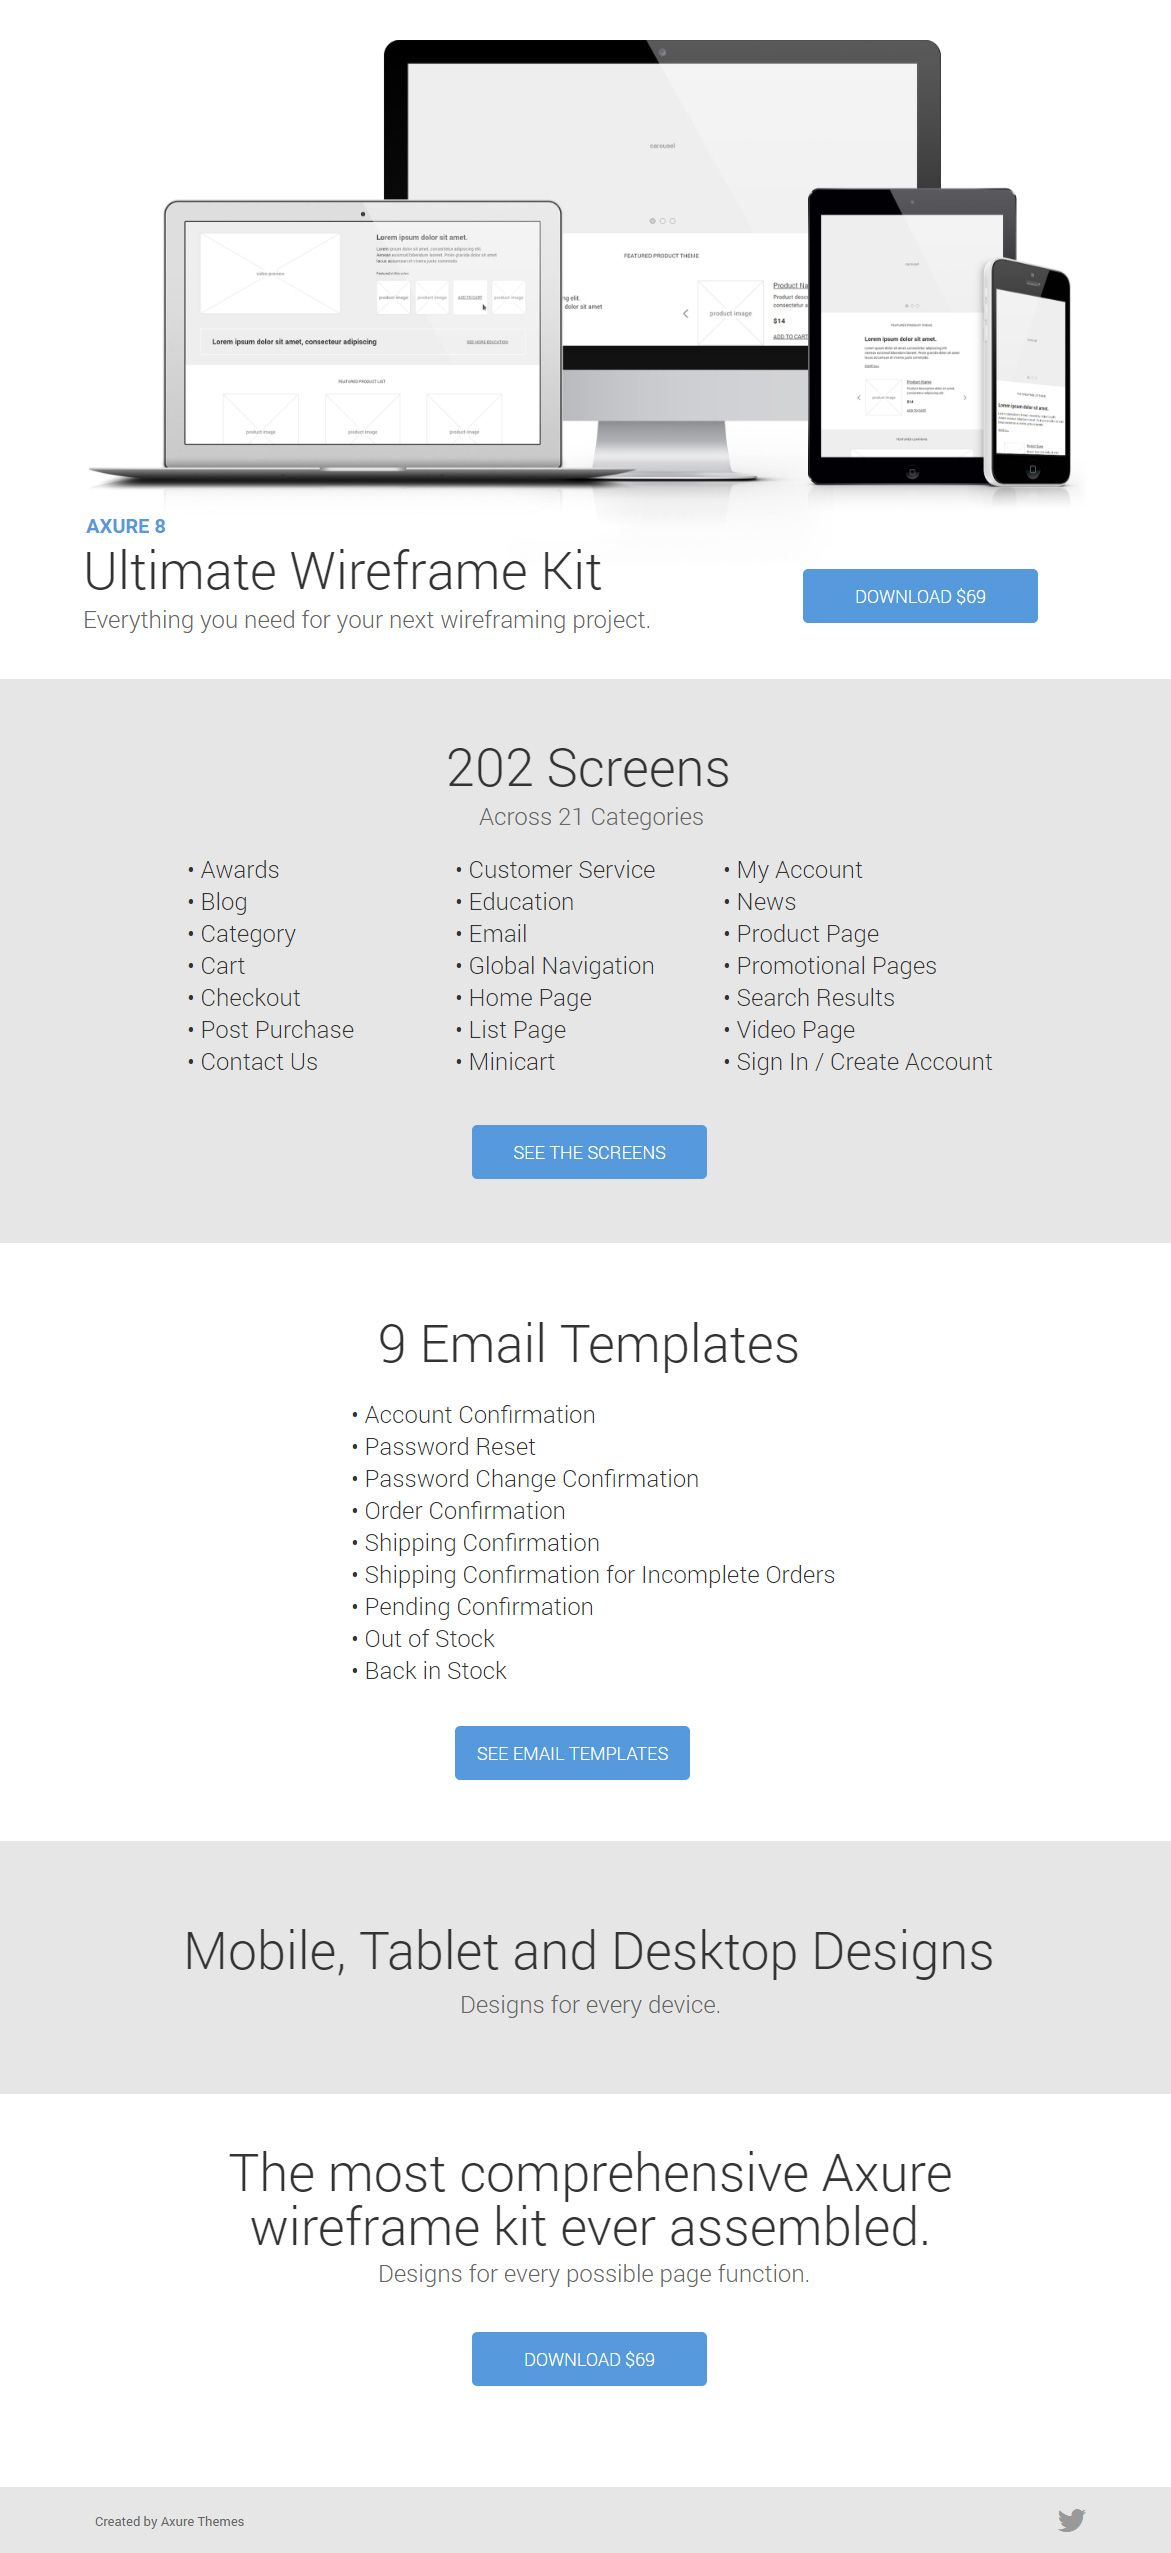 Axure wireframe kit 200 screens mobile tablet and for Axure tablet template